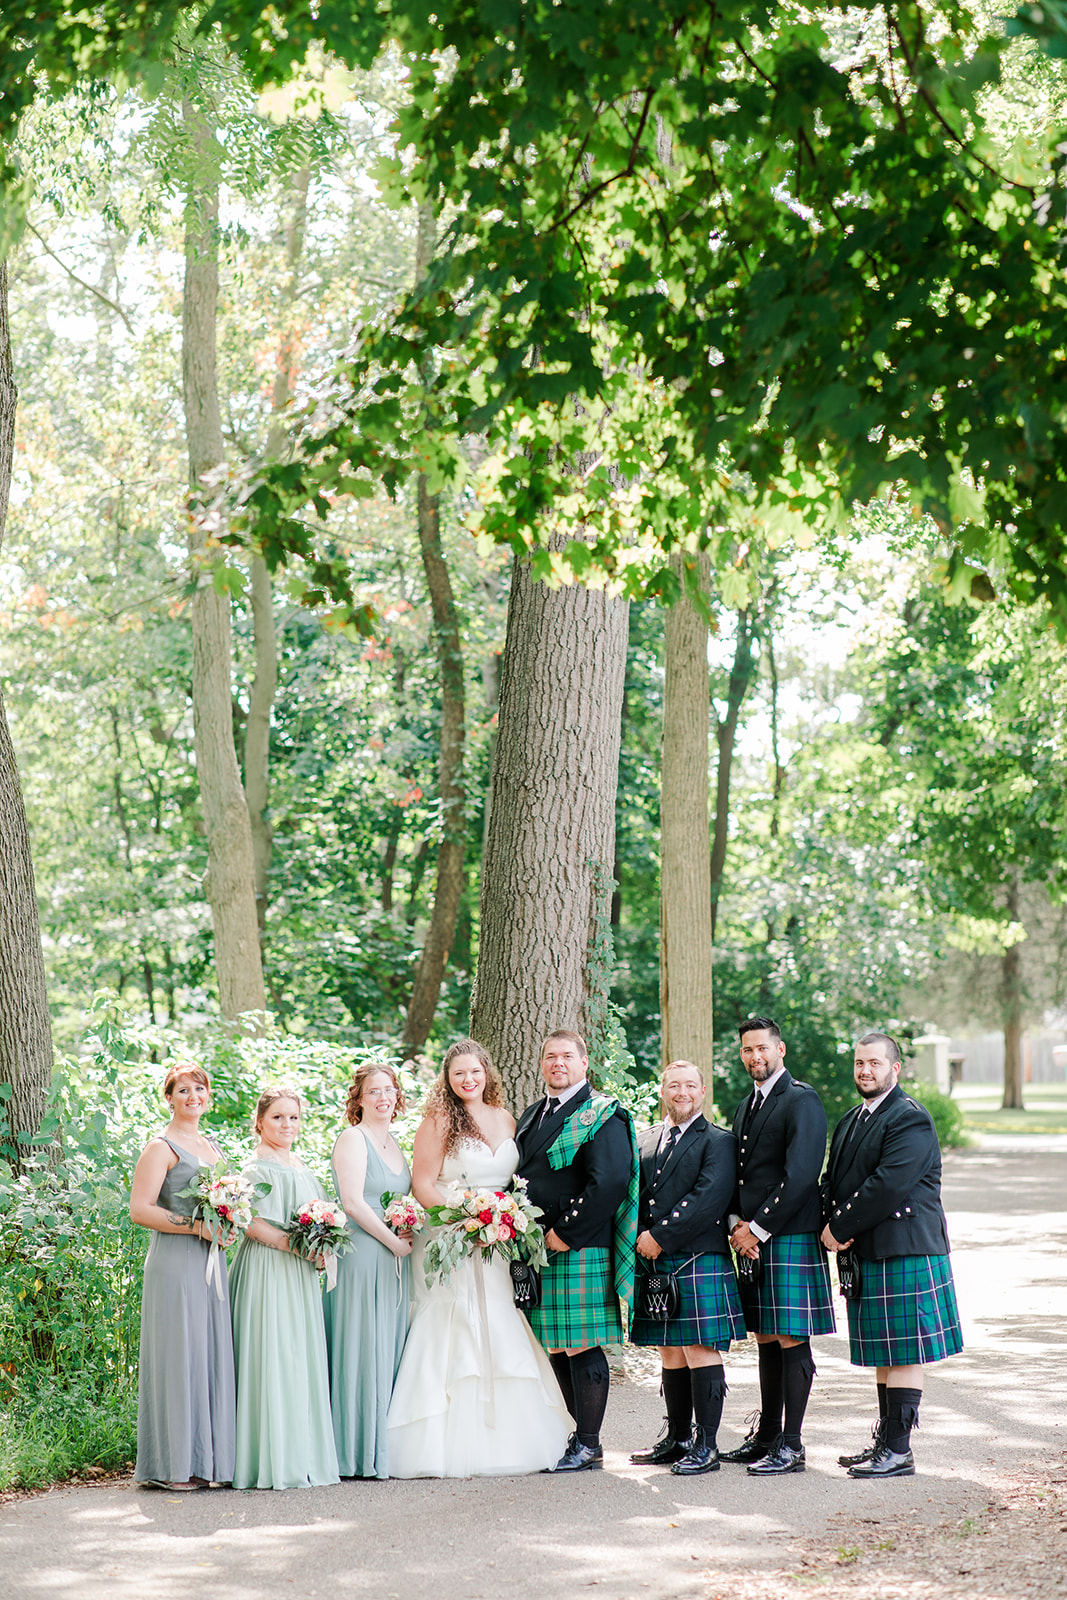 Bridal party smiling before a lakeside wedding